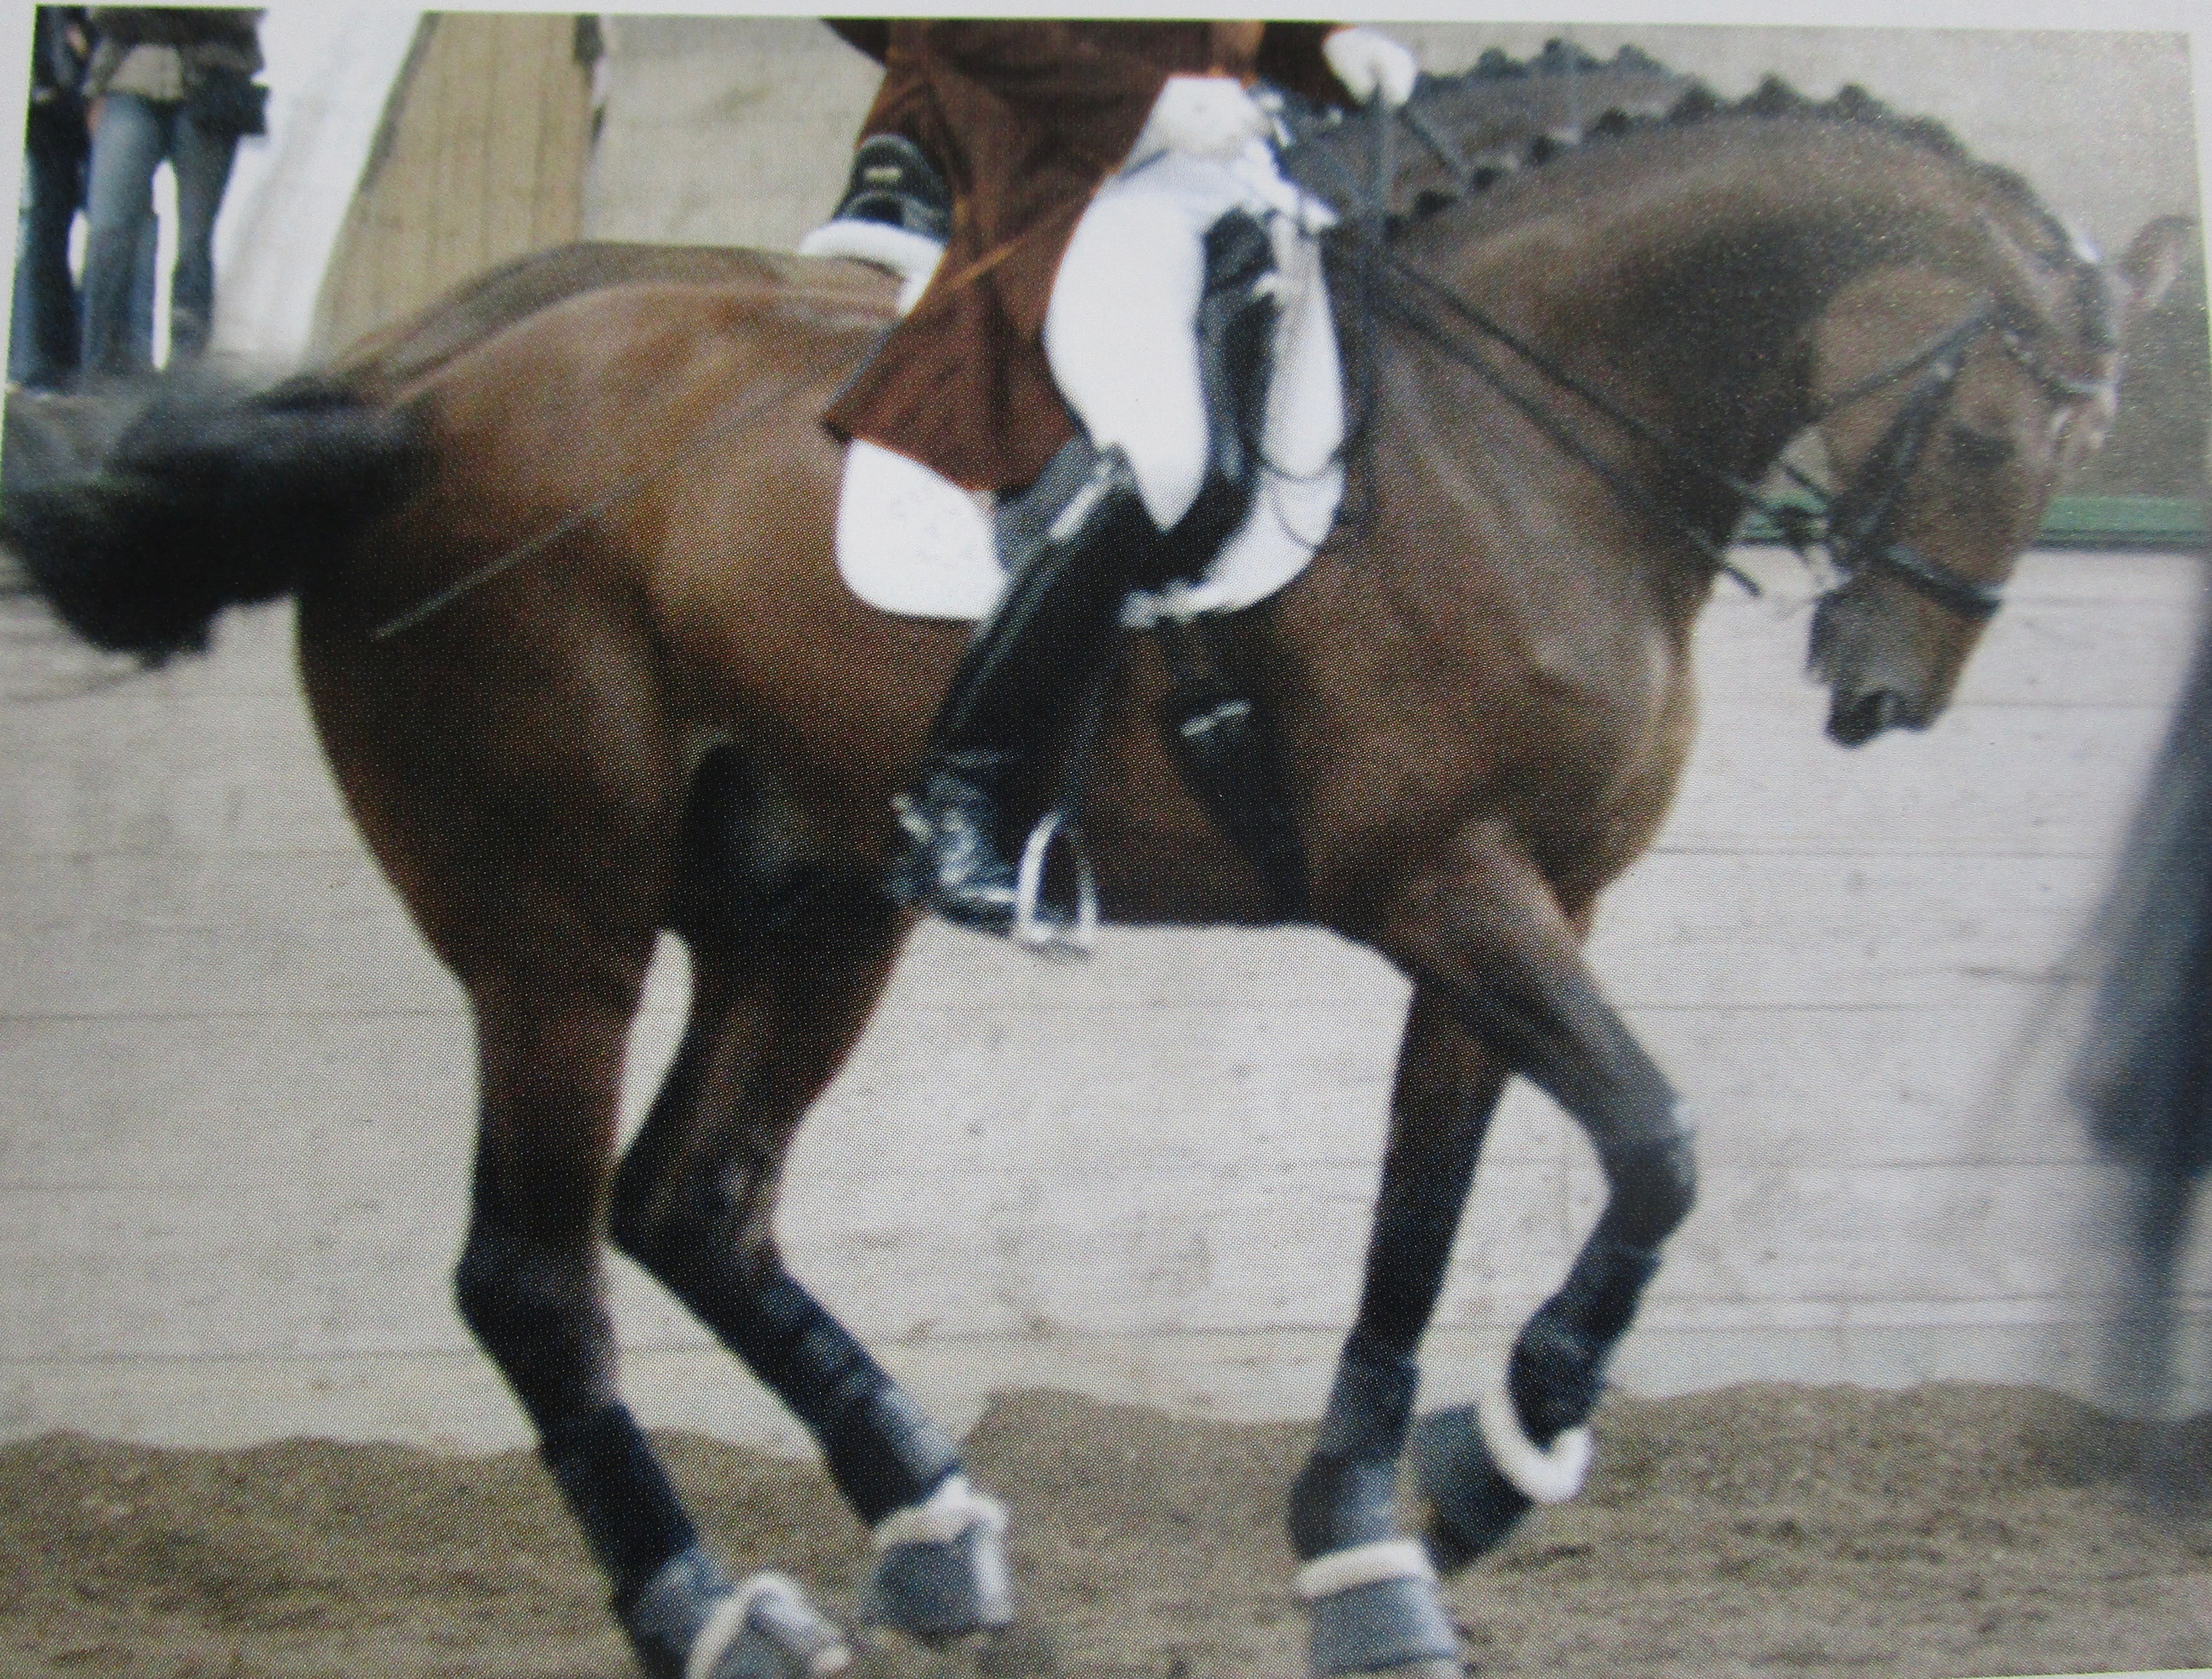 A faulty piaffe with the horse behind the vertical